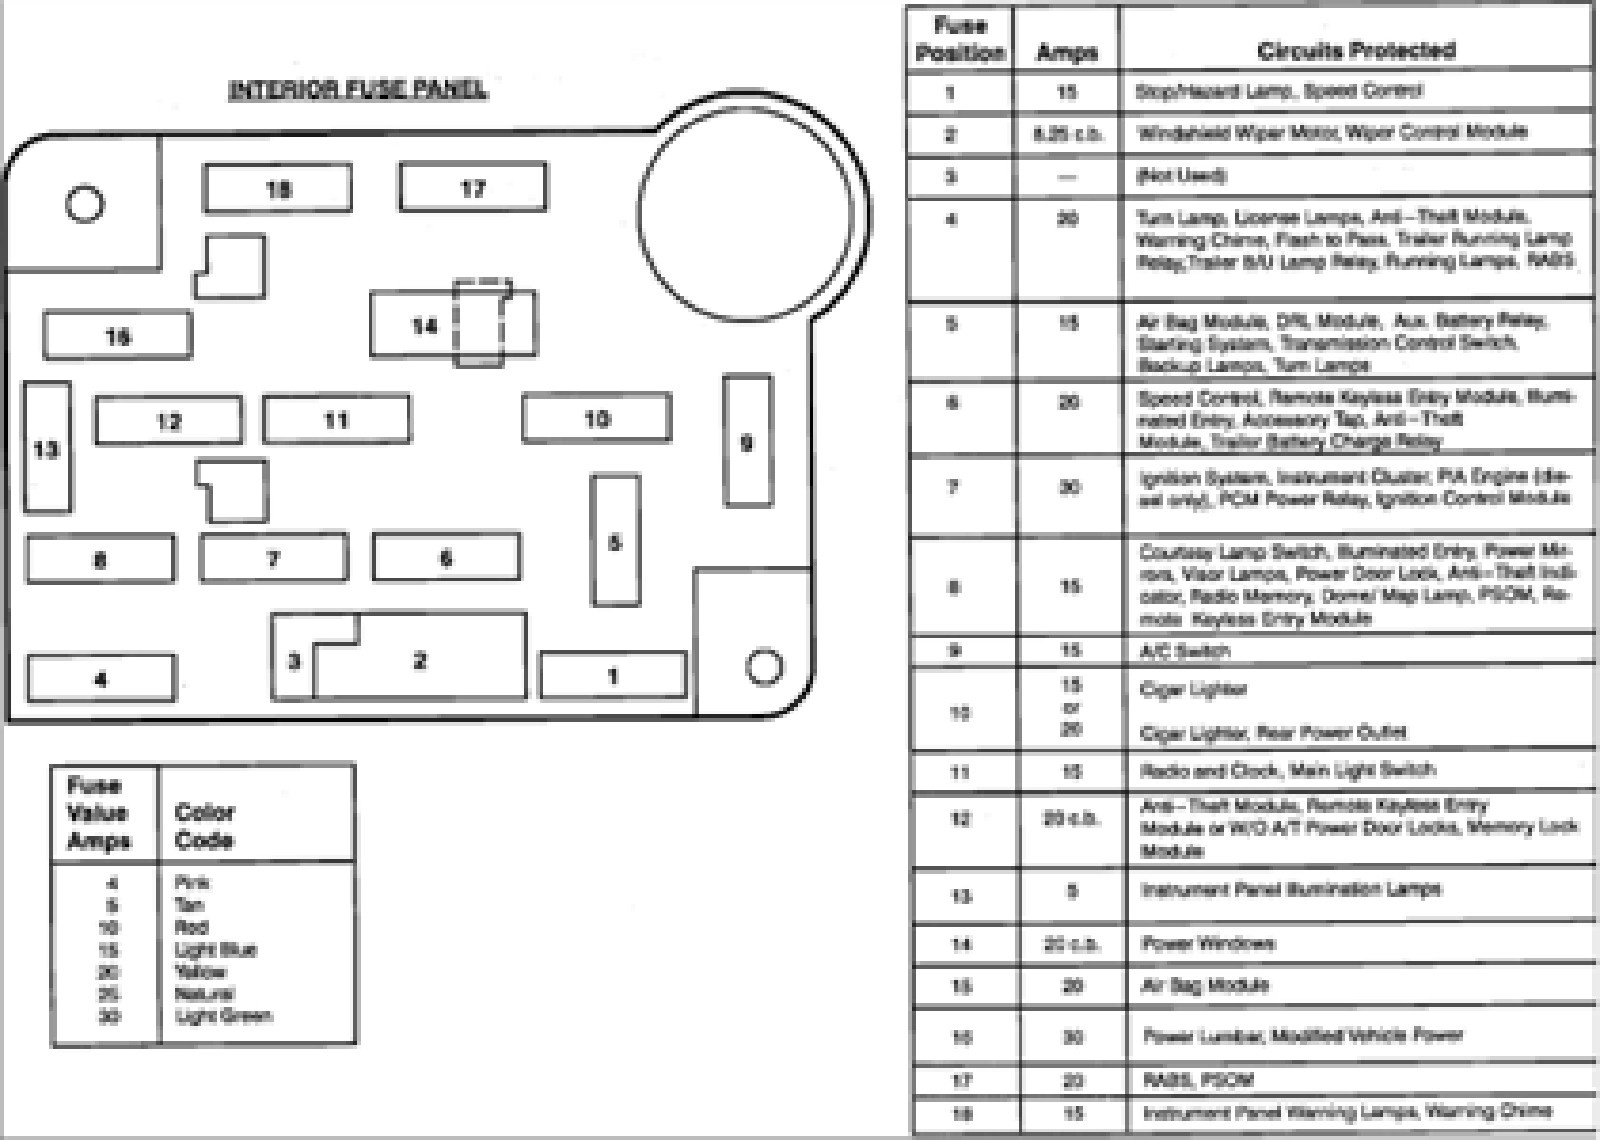 1995 Ford E150 Van Fuse Diagram Wiring Diagrams Panel Panel Chatteriedelavalleedufelin Fr